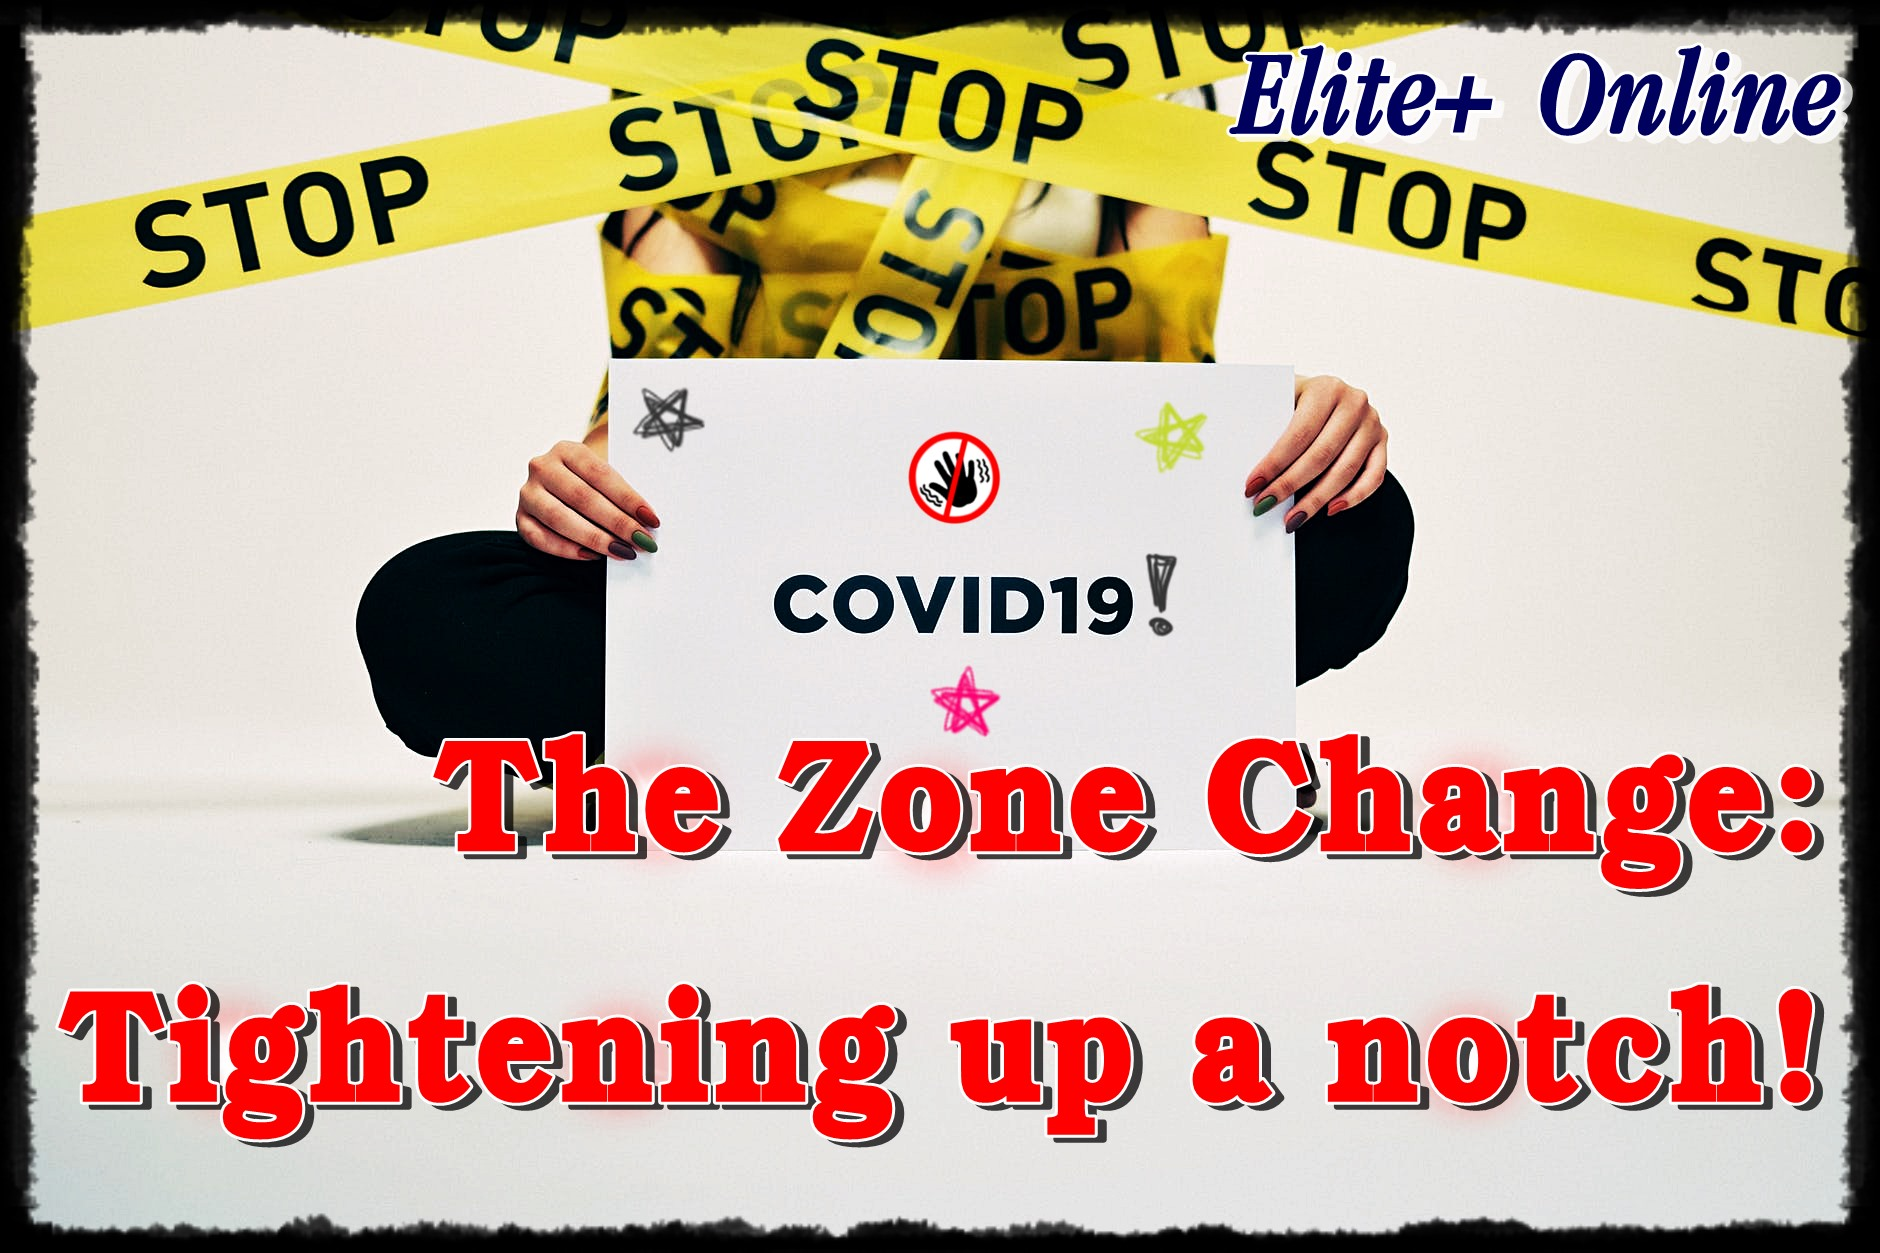 The Zone Change: Tightening up a notch!